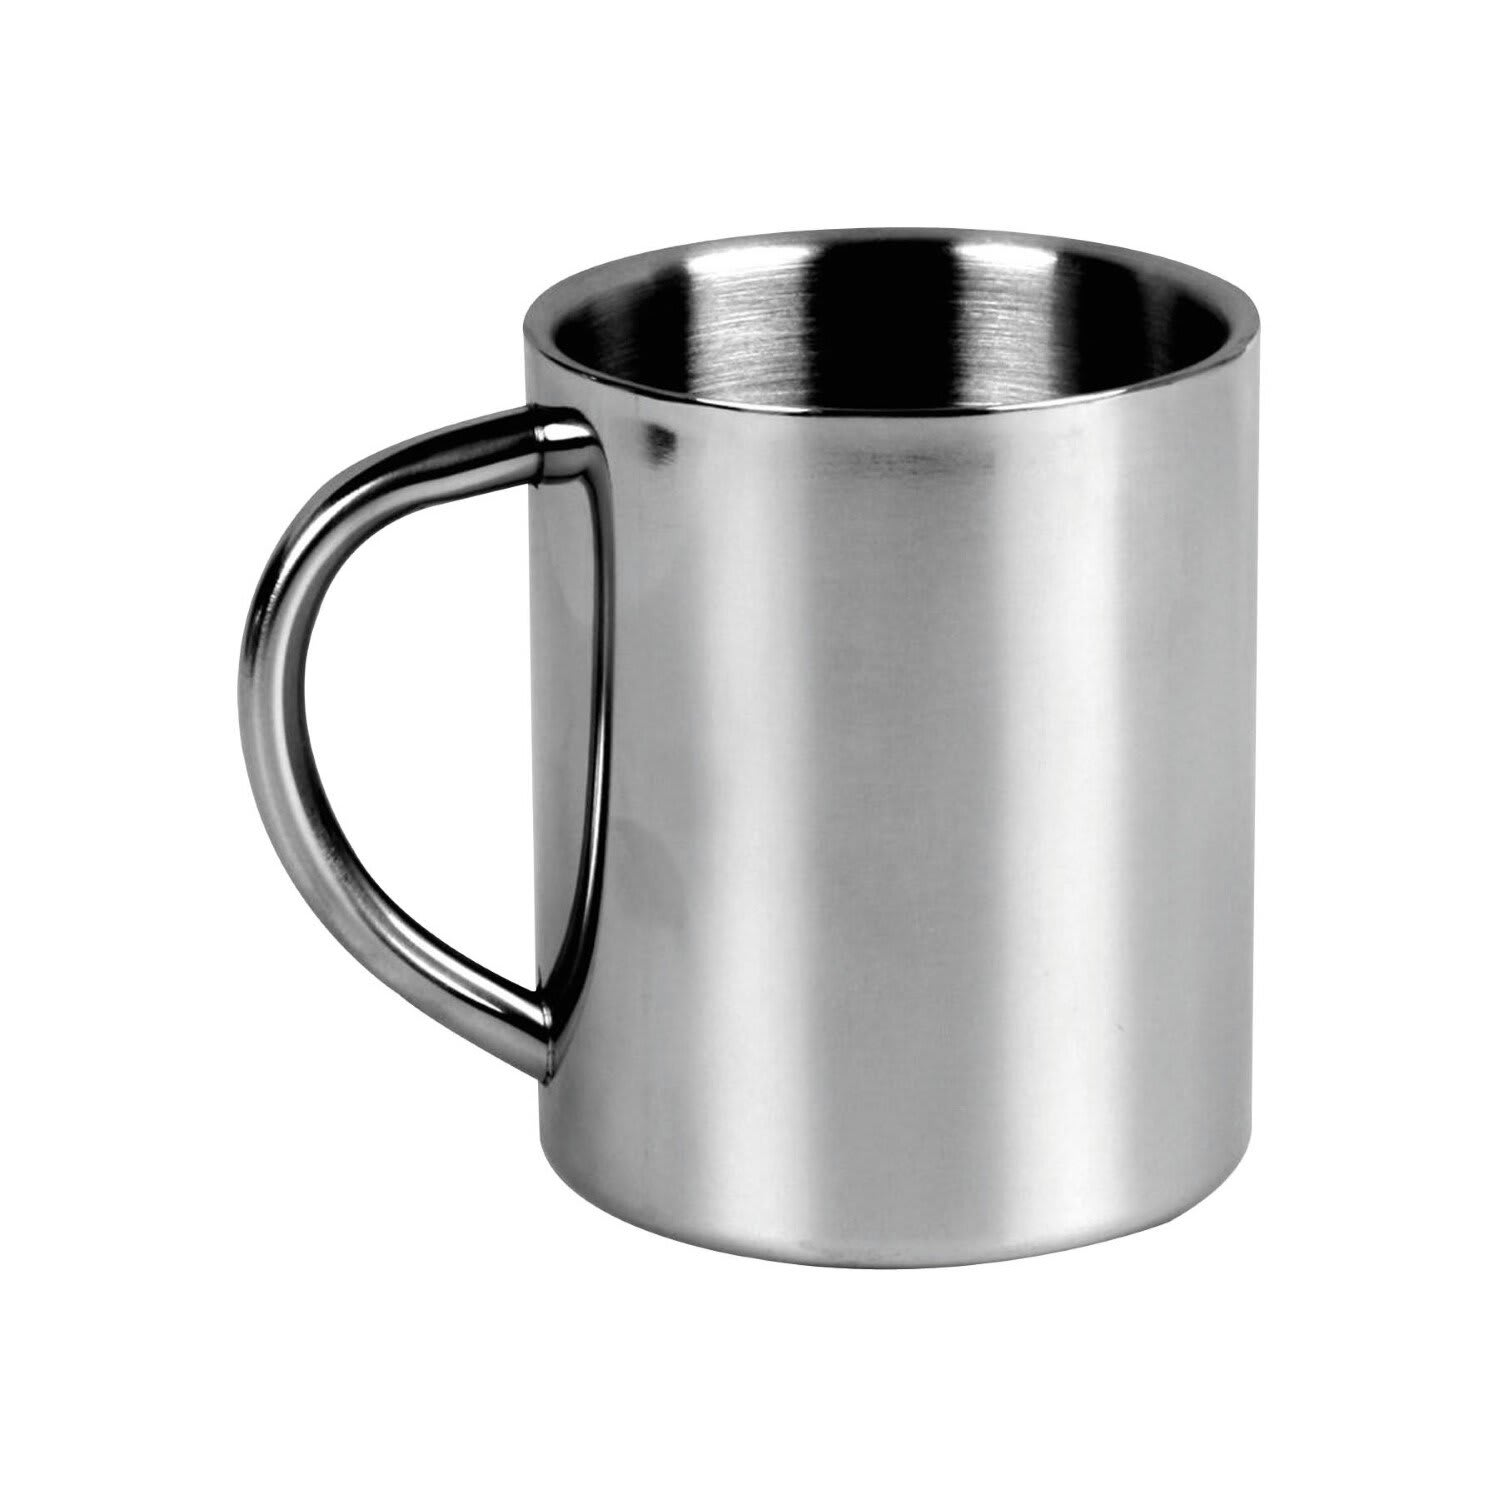 Natural Instincts stainless steel mug 400Ml